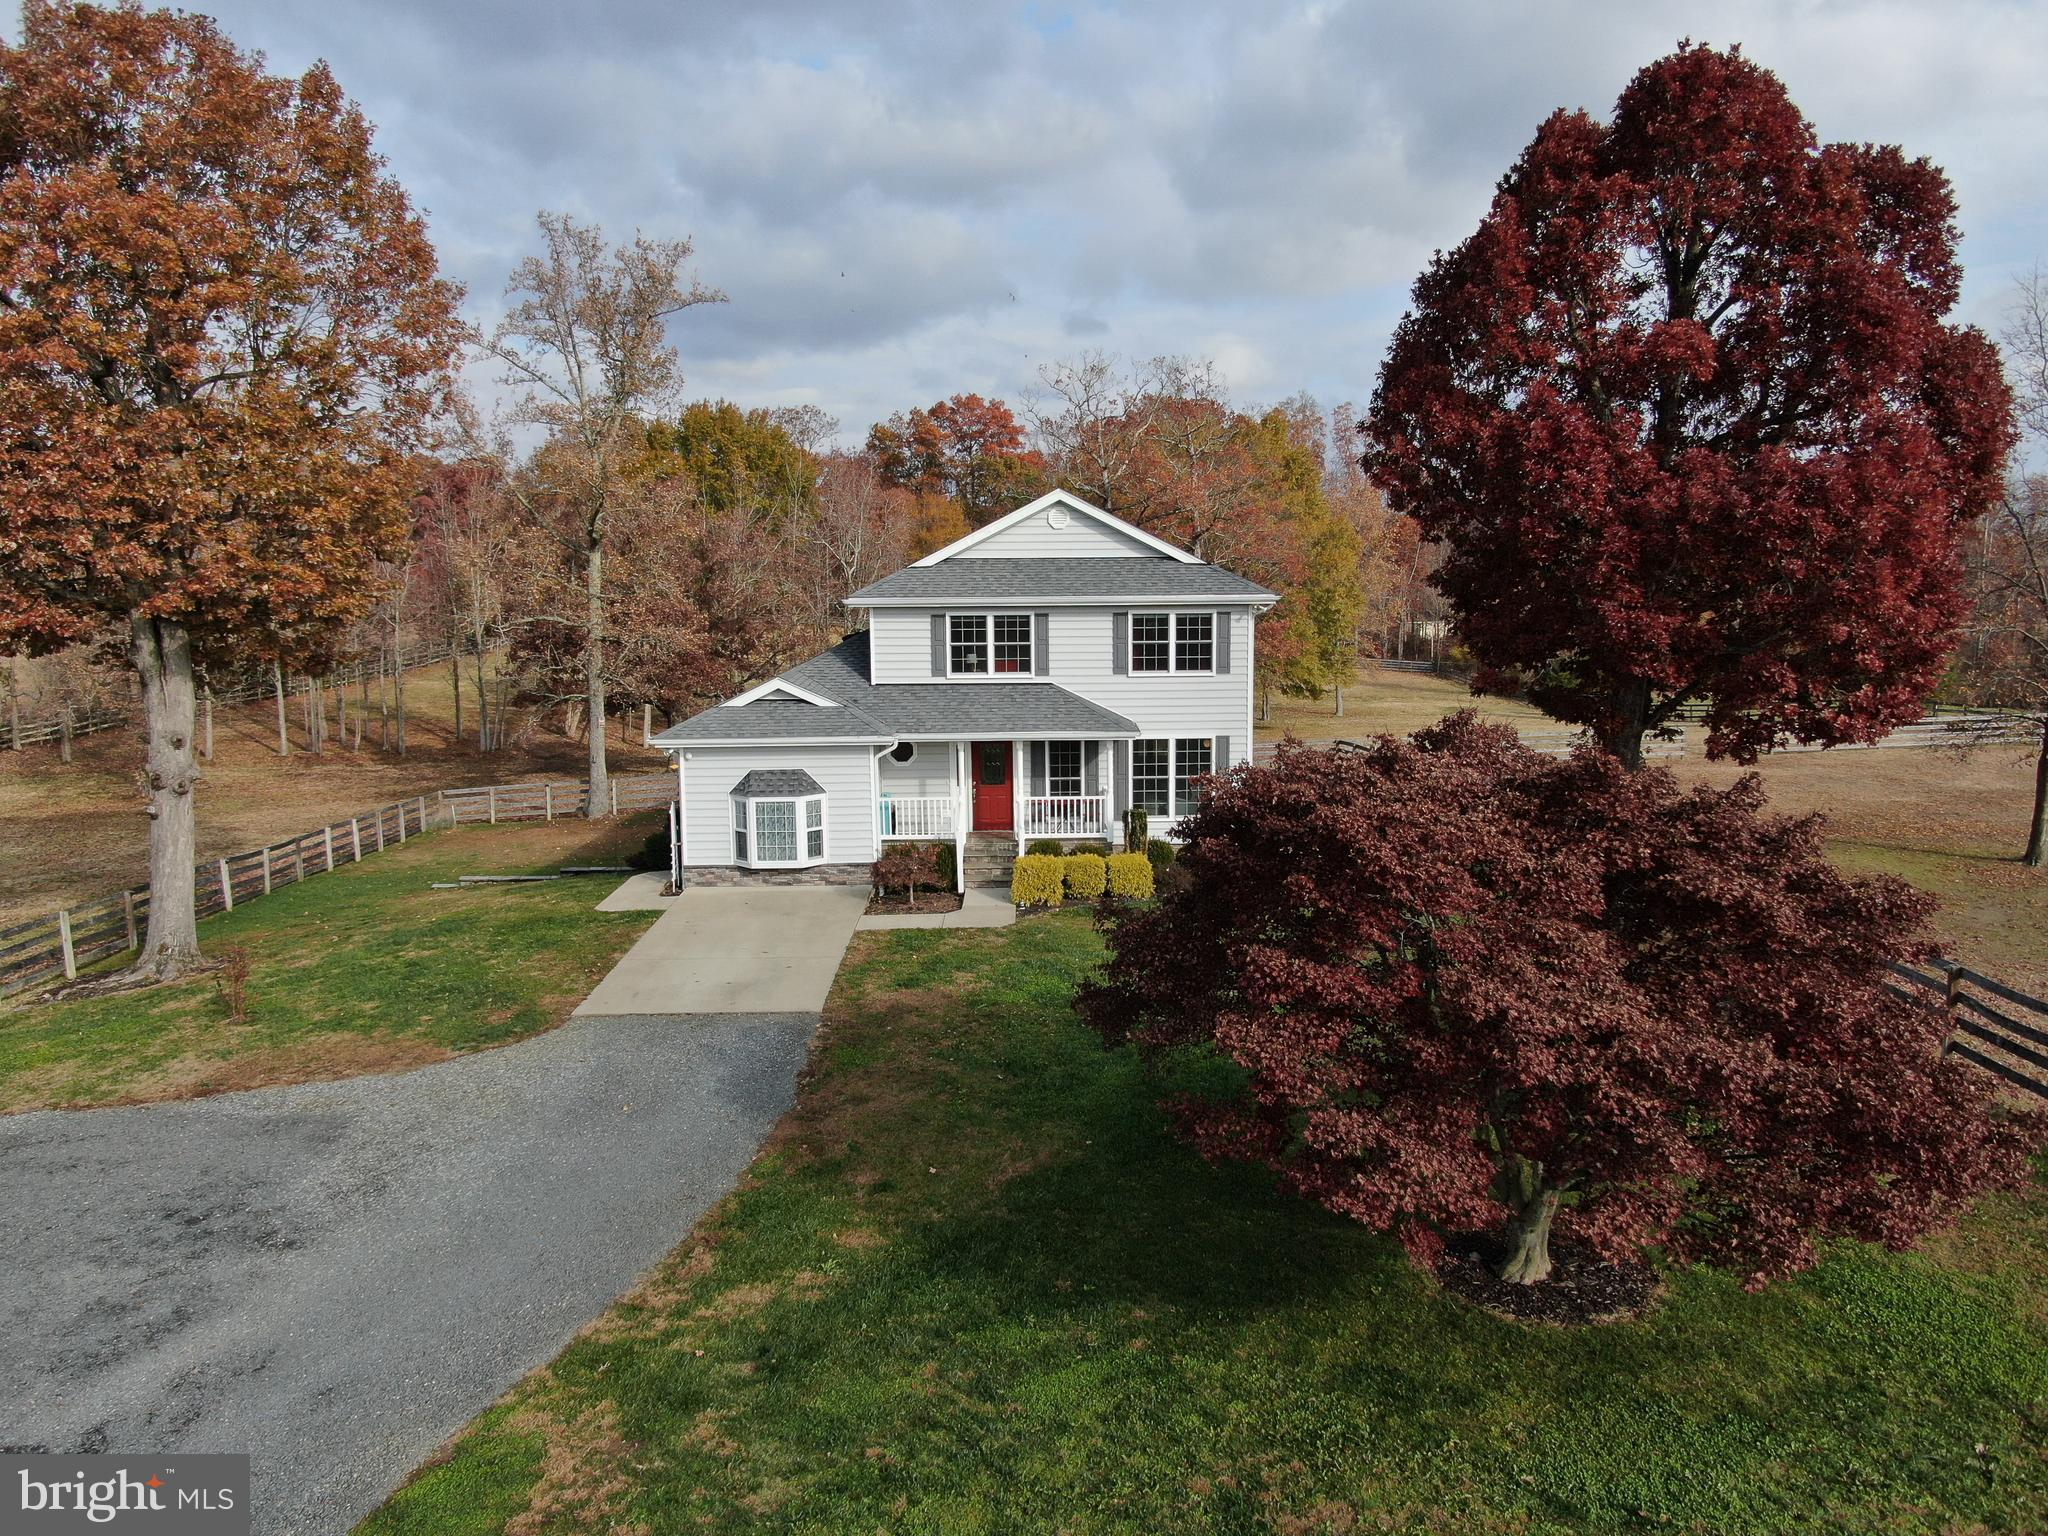 EQUESTRIAN DREAM HOME & HORSE FACILITY!  REMODELED, WELL MAINTAINED 5 BEDROOM home.   Beautiful HARD